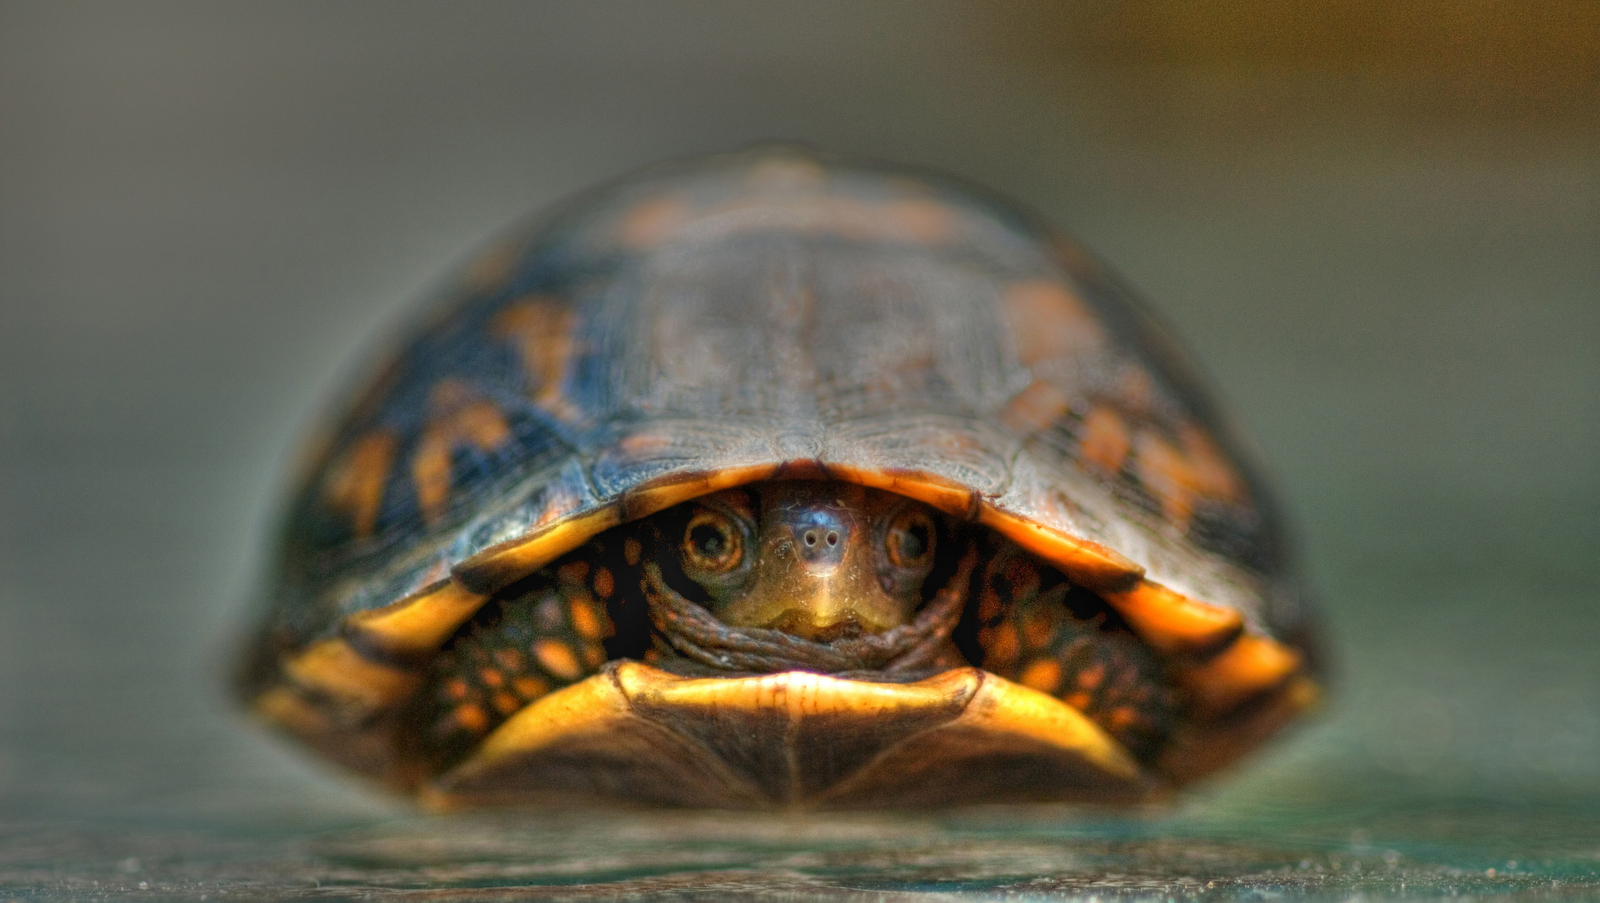 Photo of Baby Turtle by FotoDawg Wikimedia CC BY 2.0